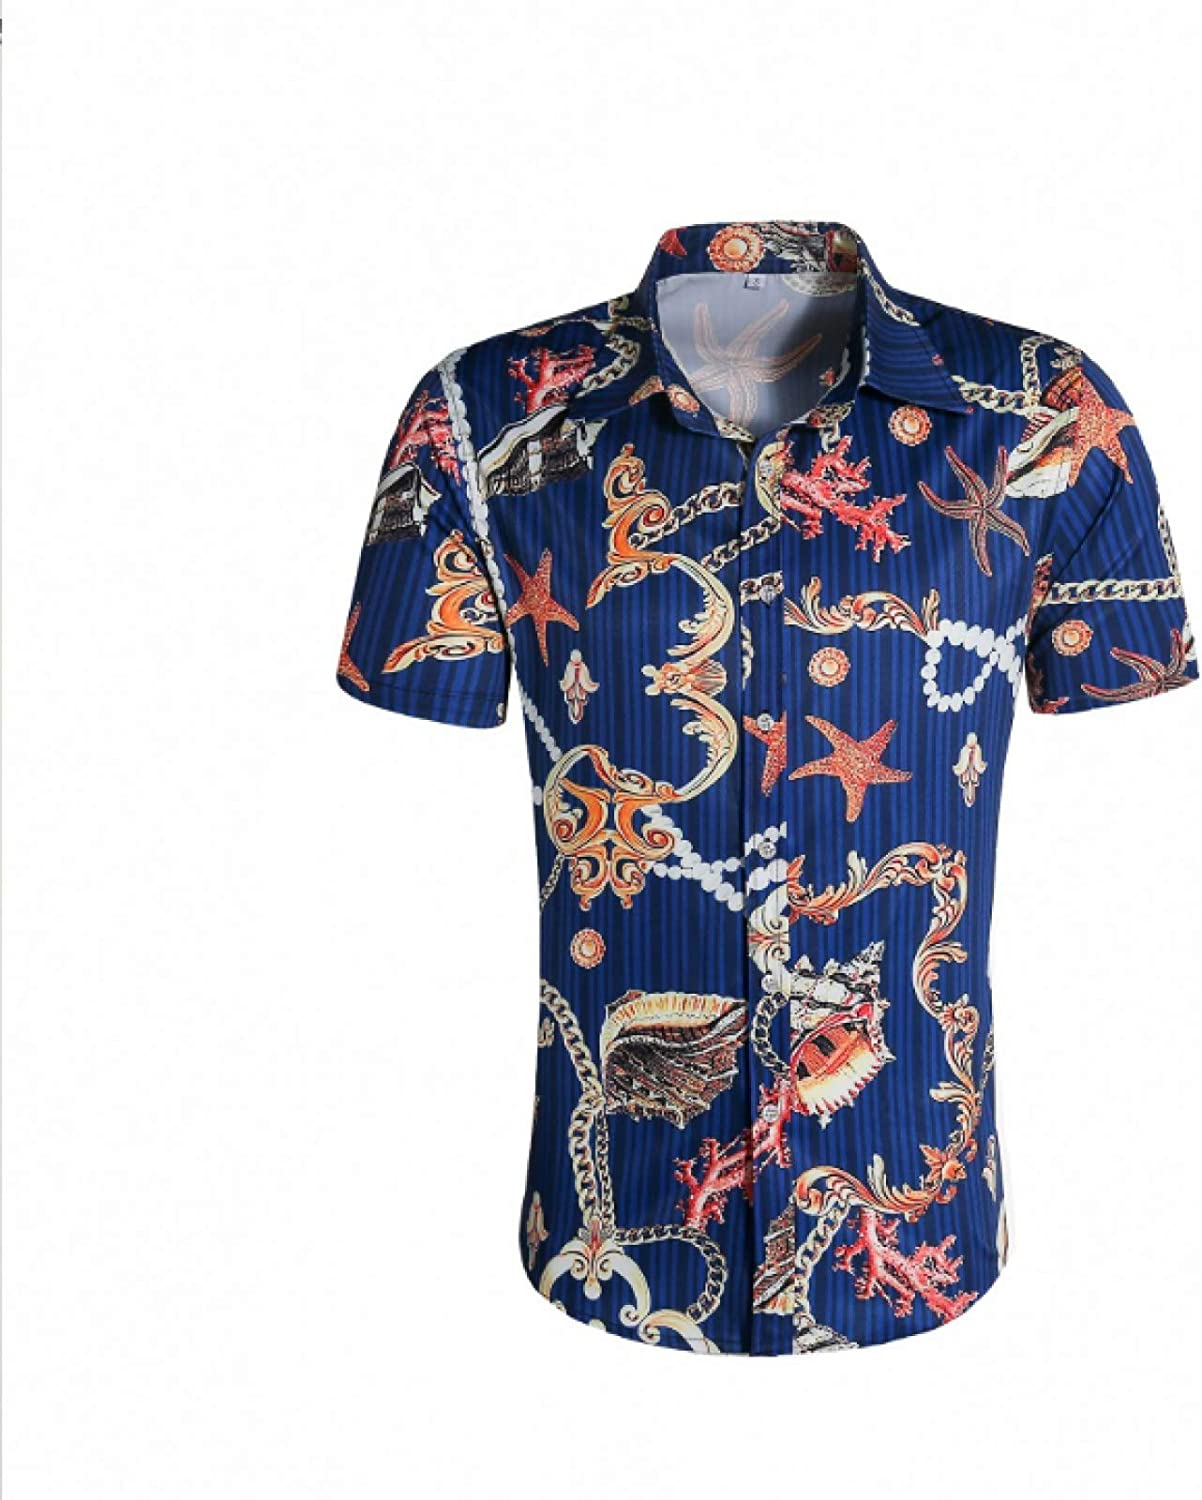 Corumly Men's Bombing Outlet ☆ Free Shipping new work Short-Sleeved Shirts New Summer Trend Personality